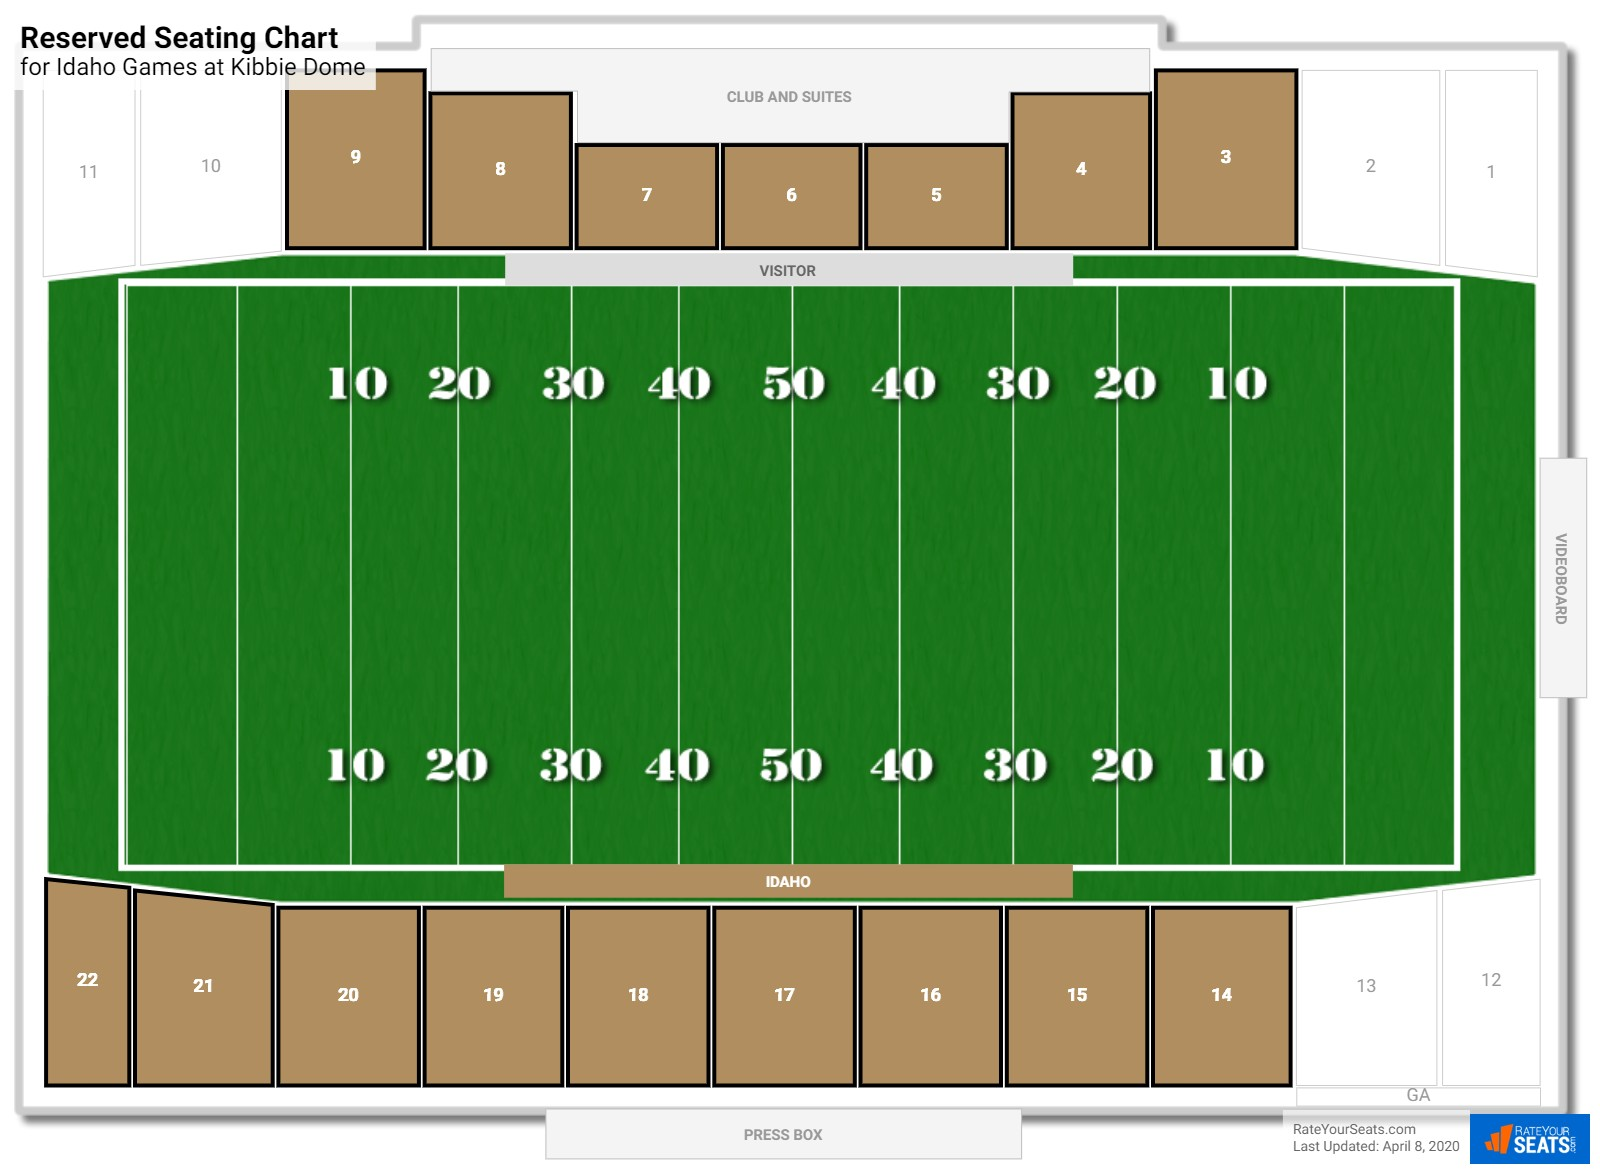 Kibbie Dome Reserved seating chart